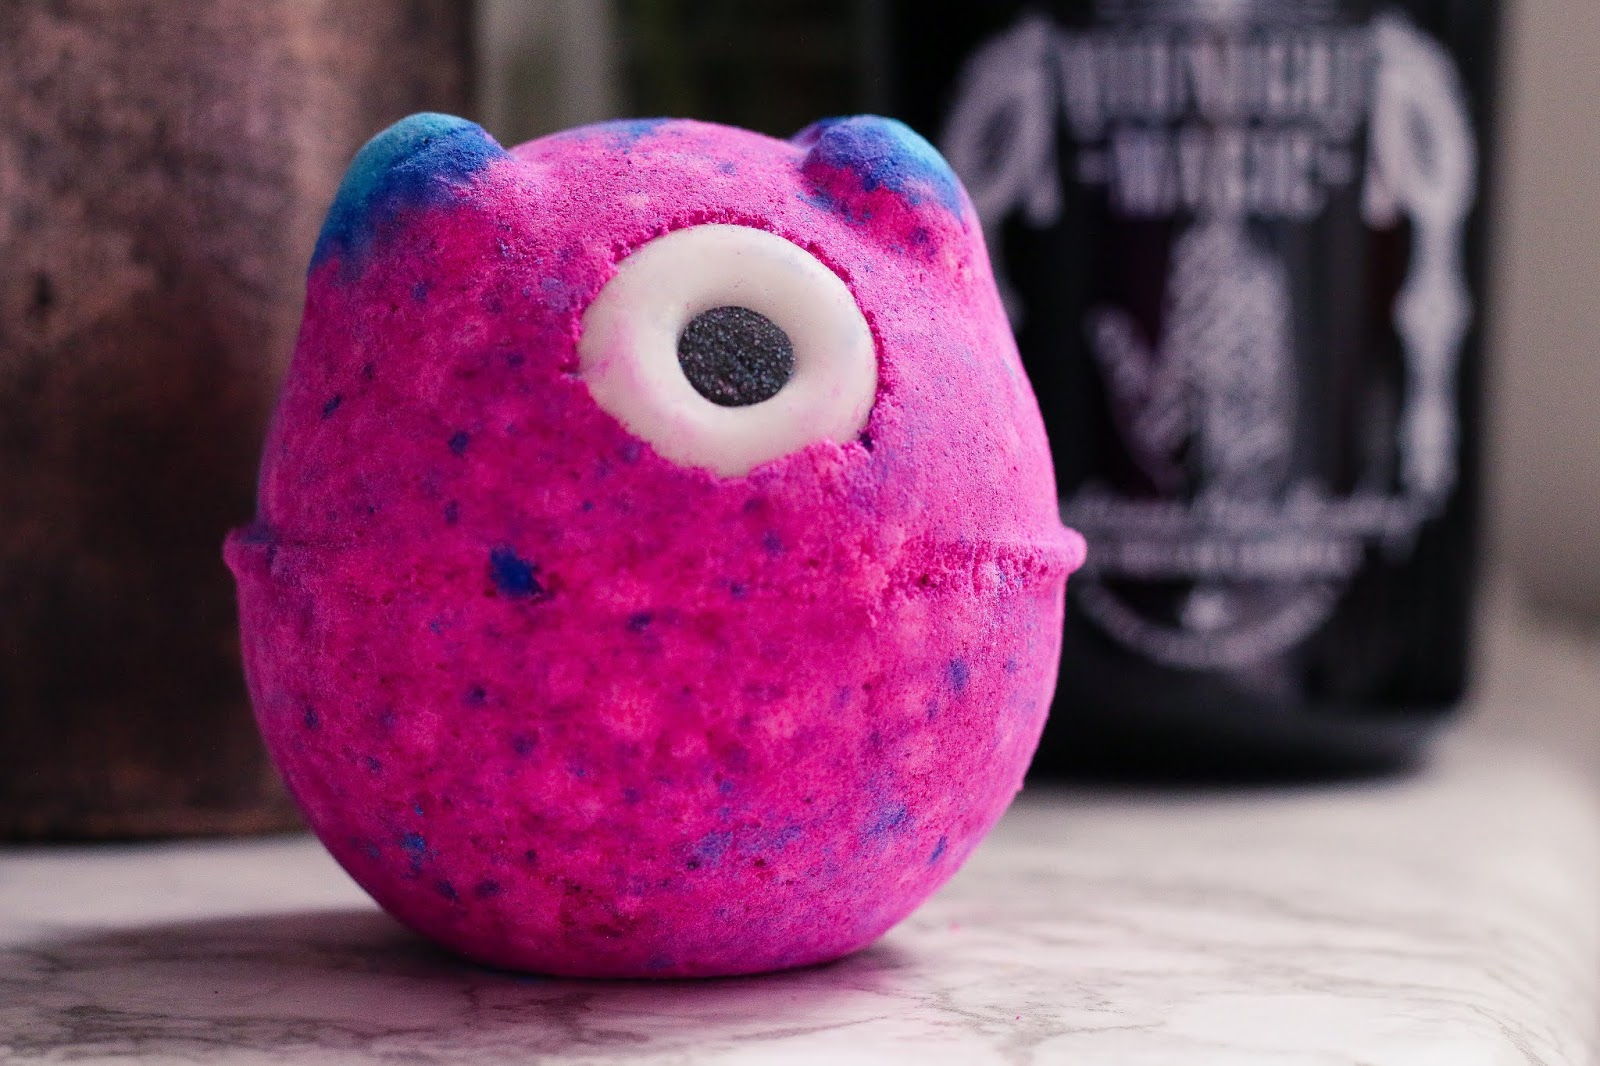 Close up photo of Monsters' Ball Lush bath bomb. Pink bath bomb with specs of blue throughout and one giant eye in the centre - On thelifeofaglasgowgirl.co.uk